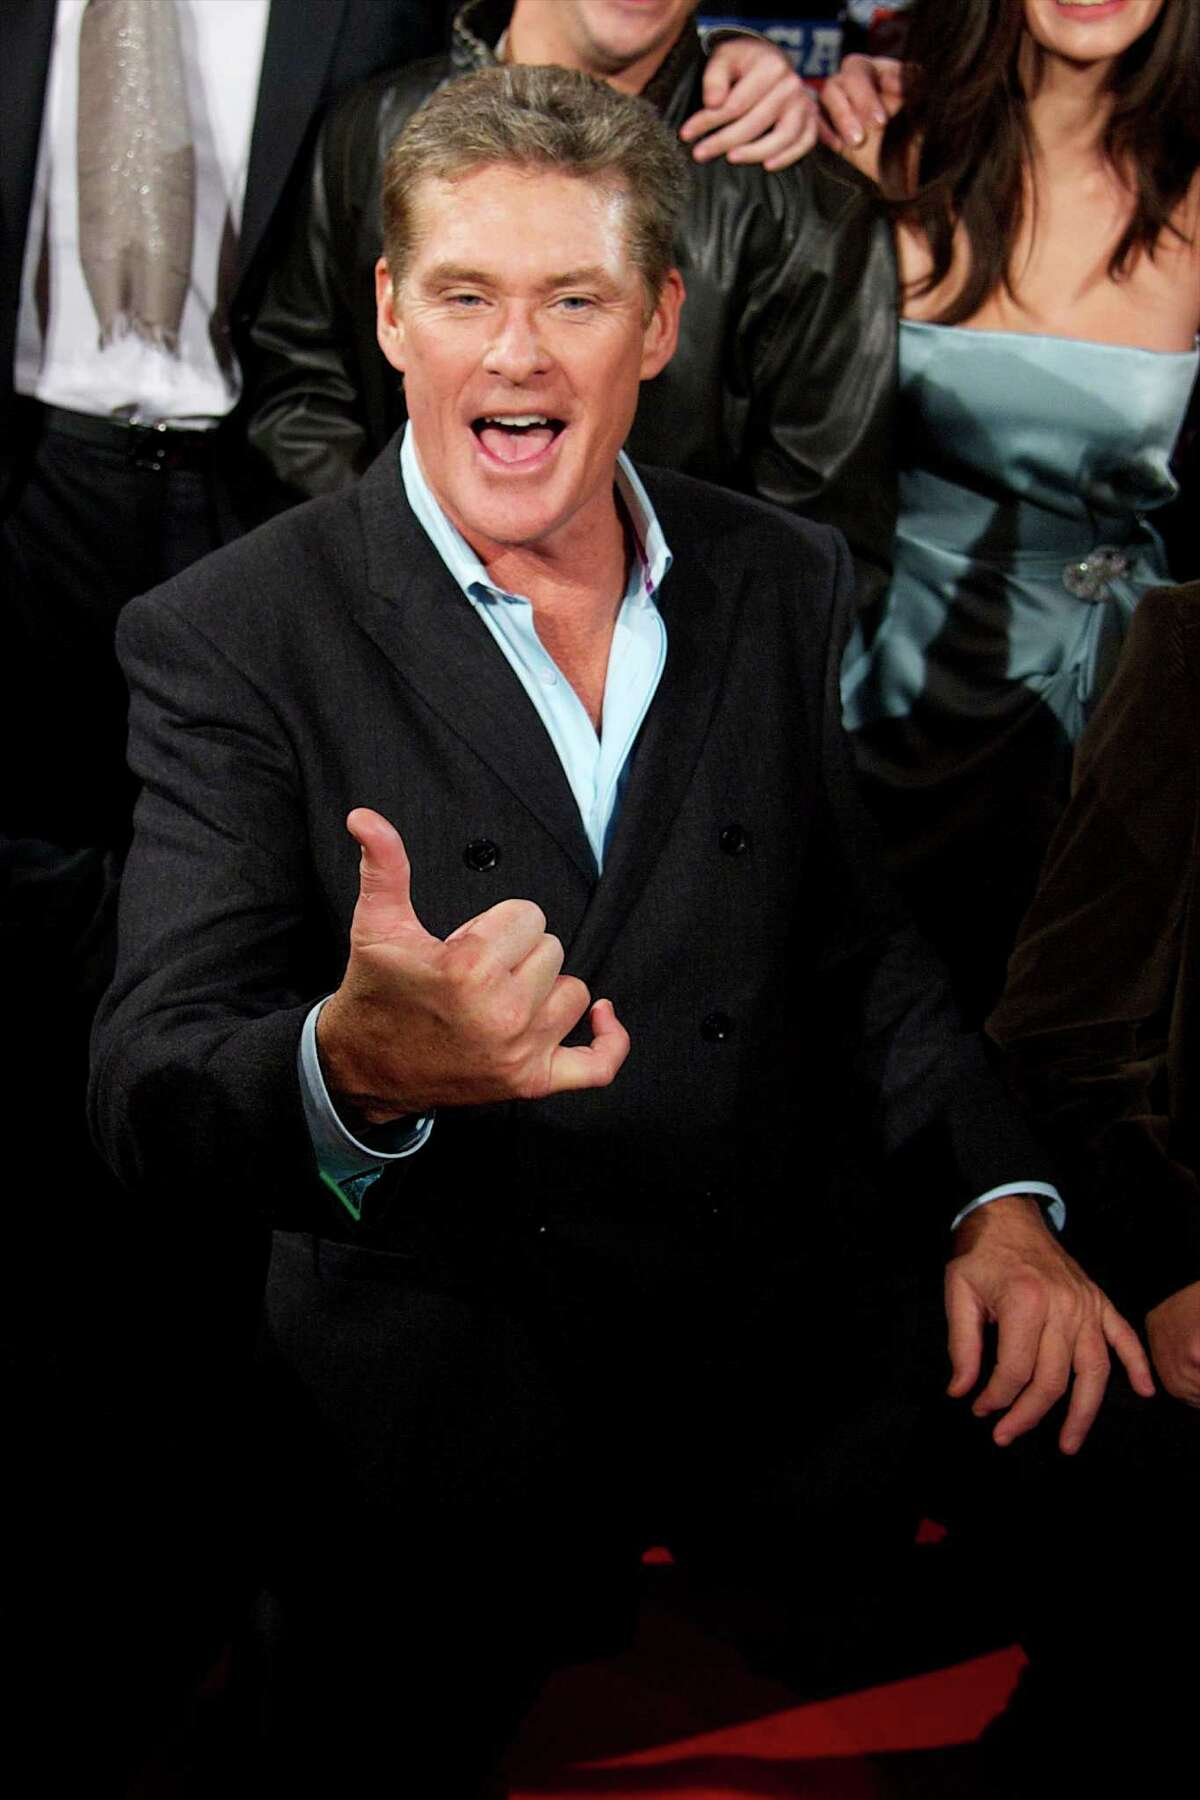 Hasselhoff has confirmed that he will make a cameo as himself in a new Baywatch movie under production. (This photo was taken on Nov. 24, 2011.)